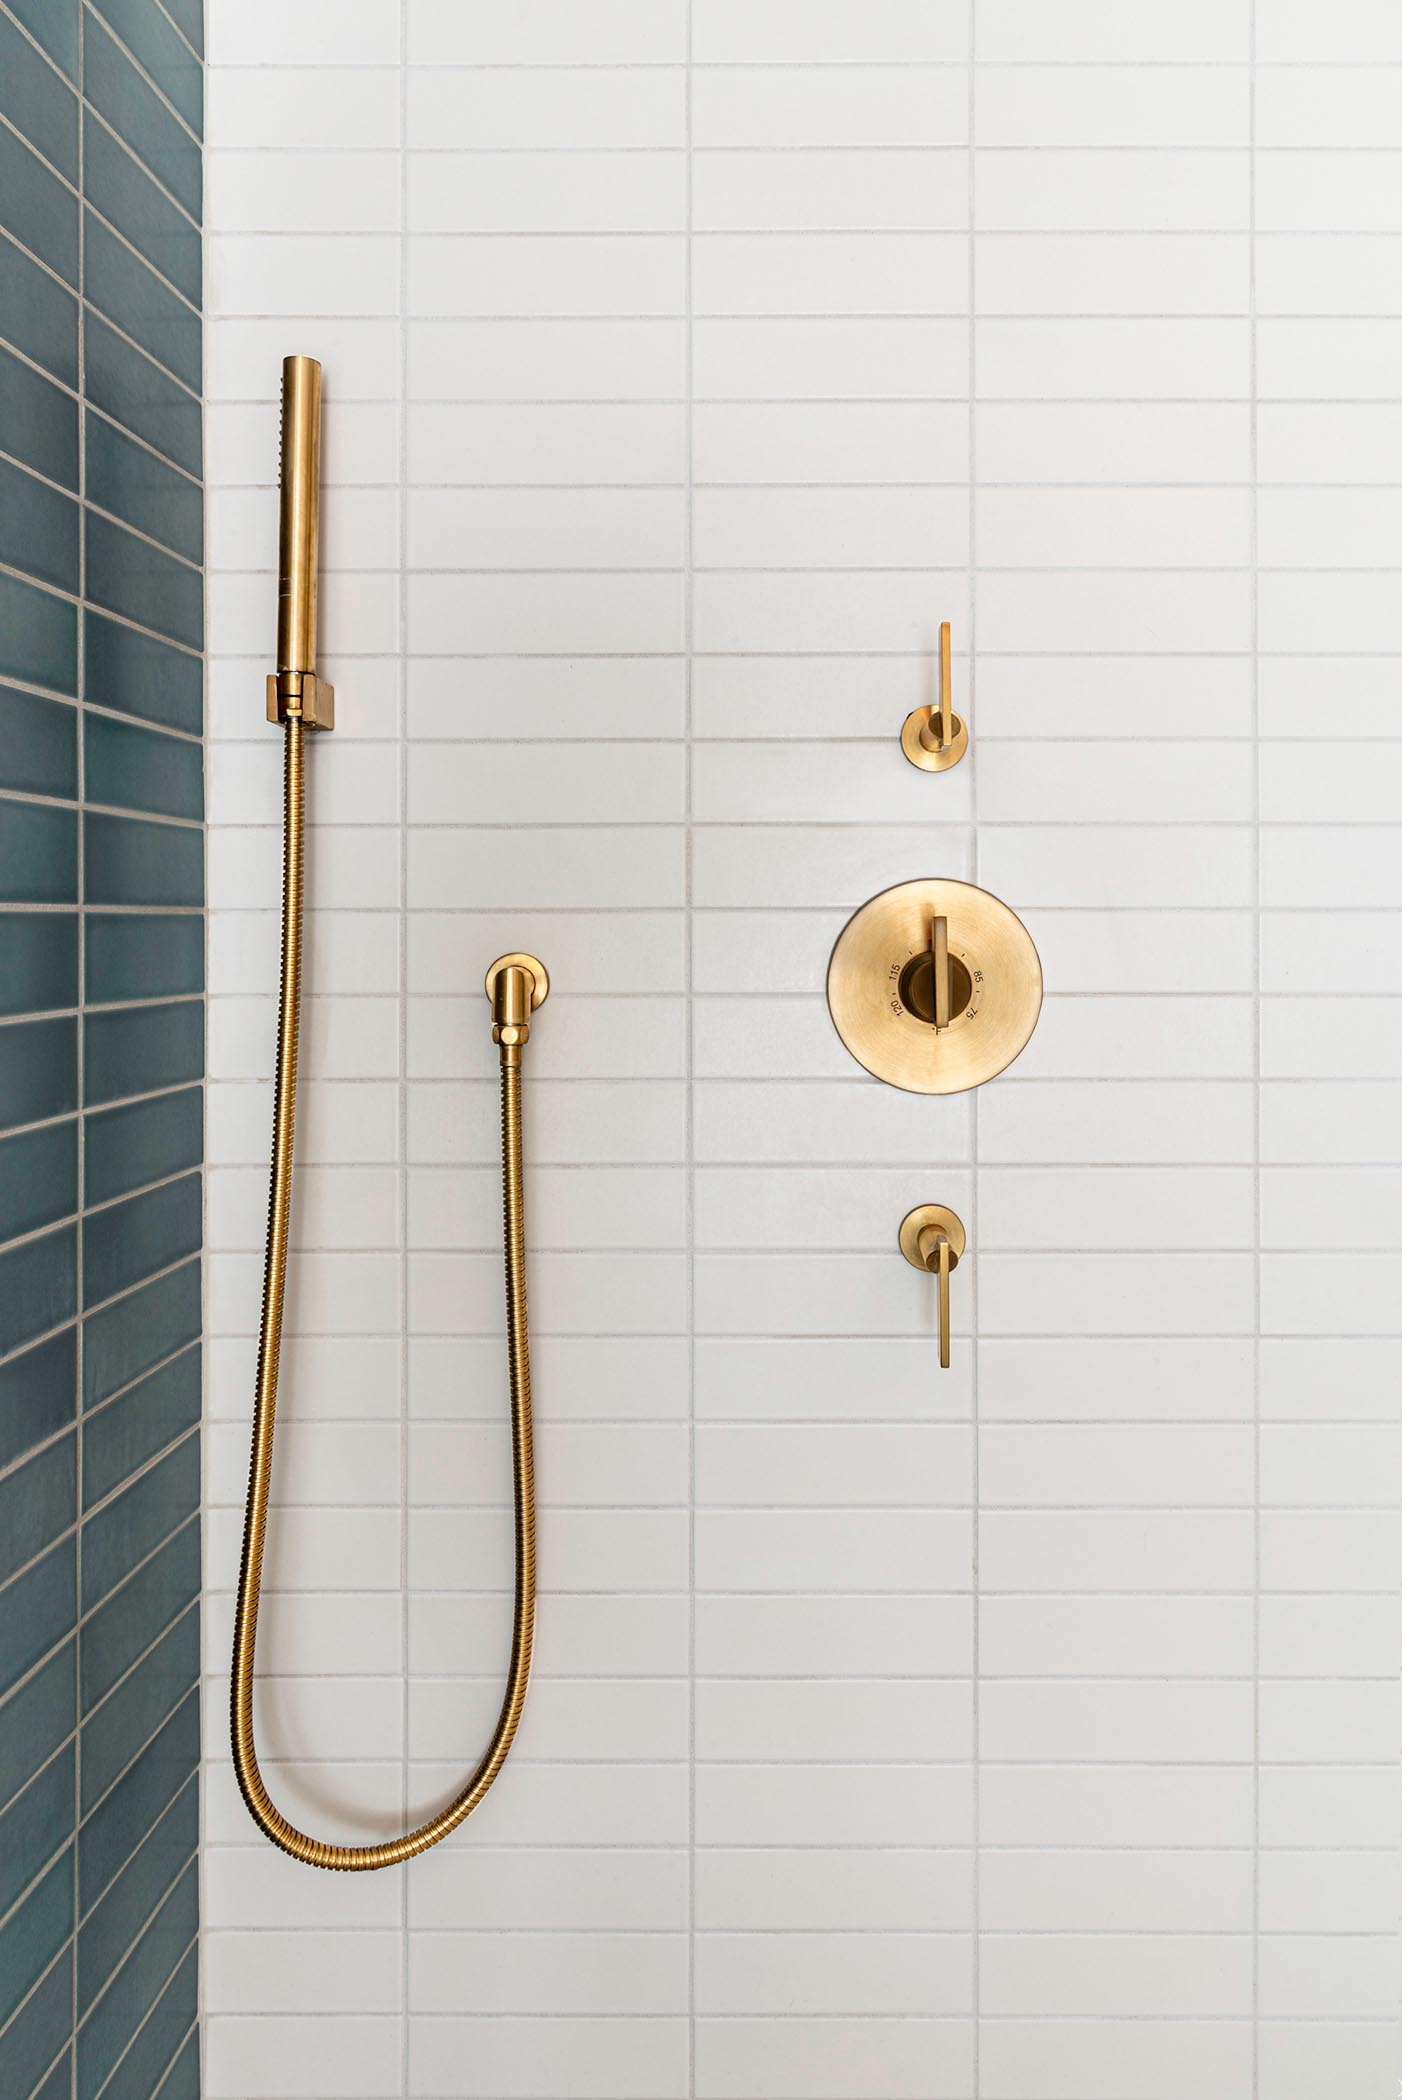 This modern bathroom with blue and white rectangular wall tile, a shower with a shelving niche, and brass fixtures.